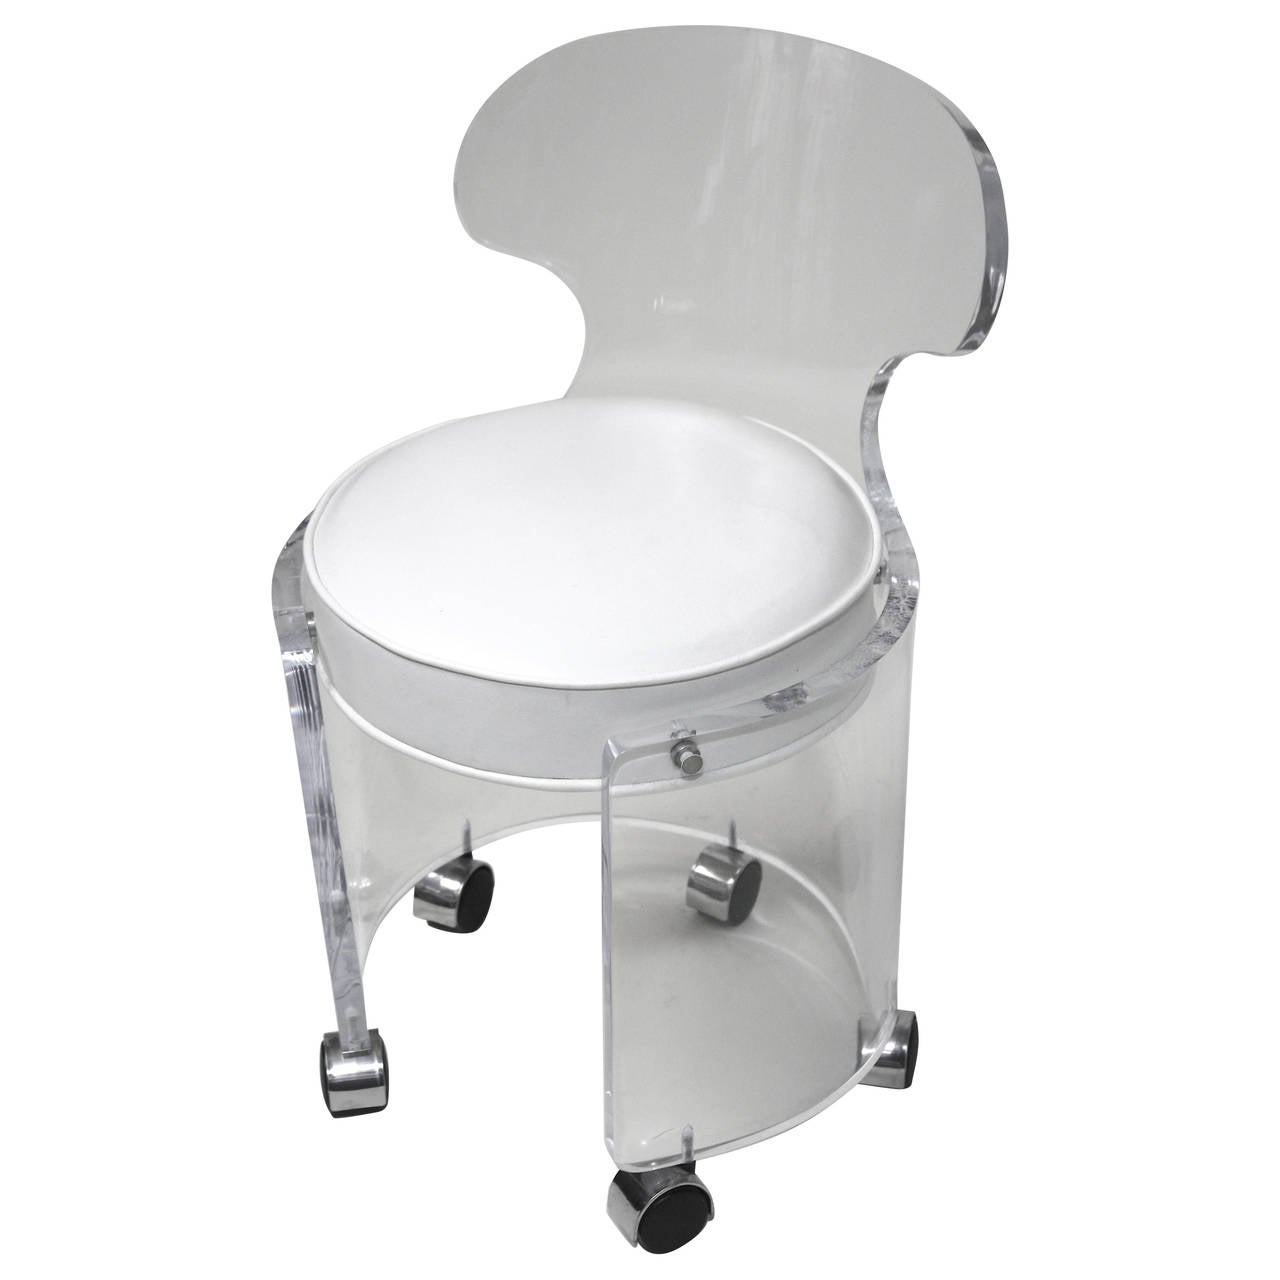 1970 lucite vanity chair glam in white leather charles hollis jones style for sale at 1stdibs - Vanity stool with wheels ...